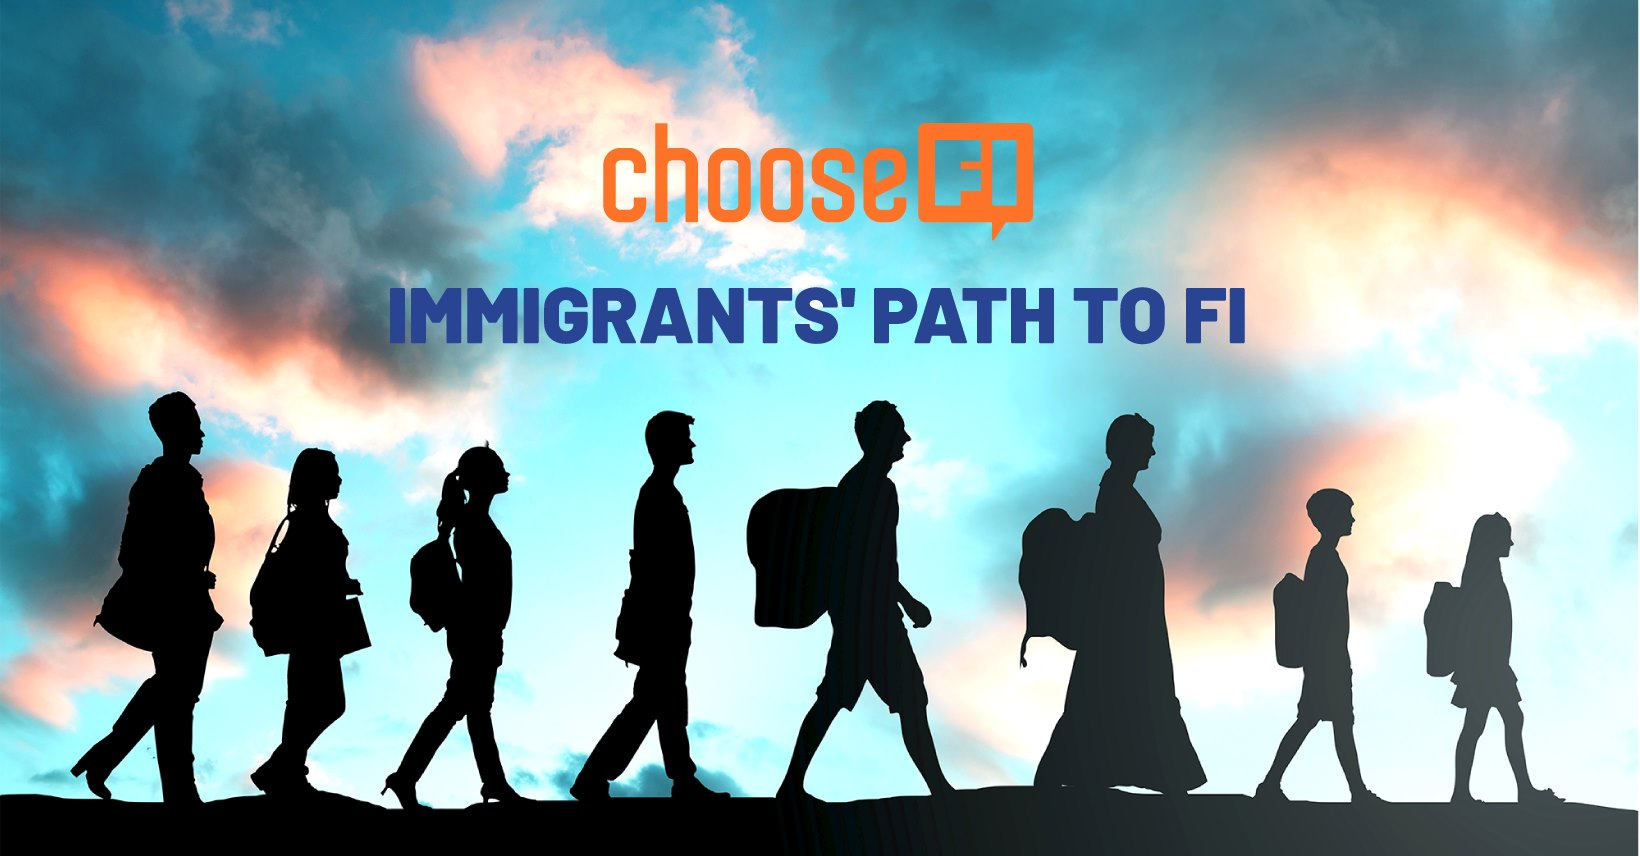 An image related to the ChooseFI - Immigrants' Path to FI